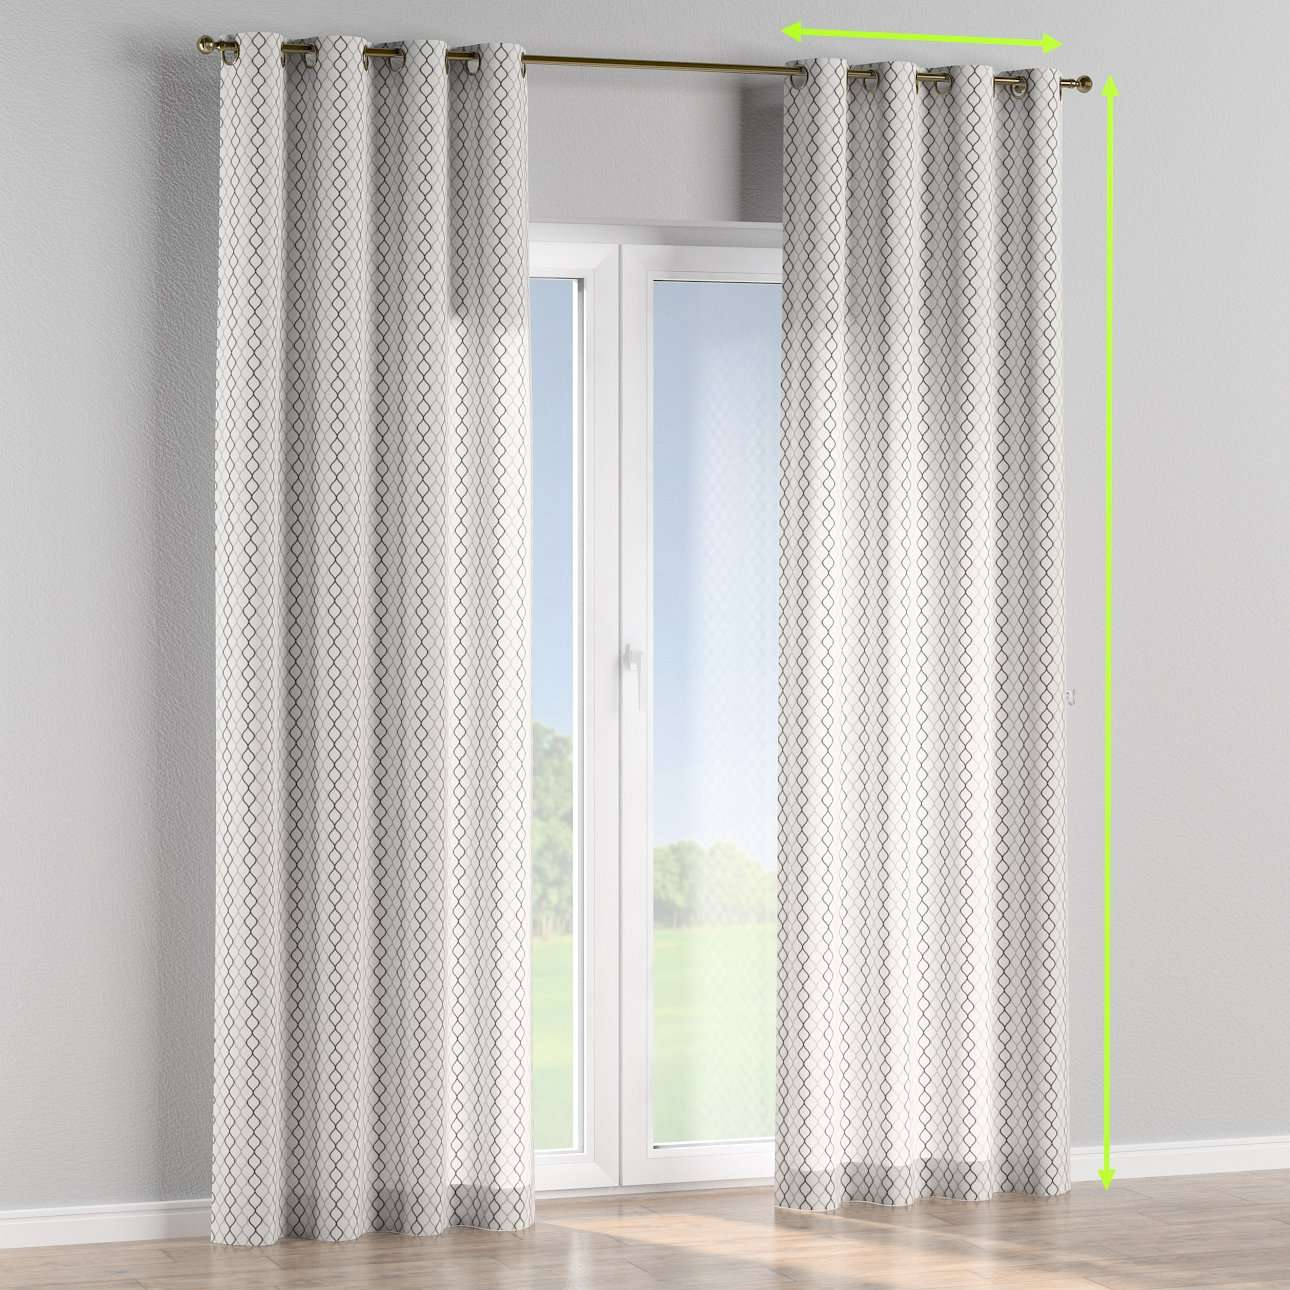 Eyelet lined curtains in collection Geometric, fabric: 141-46